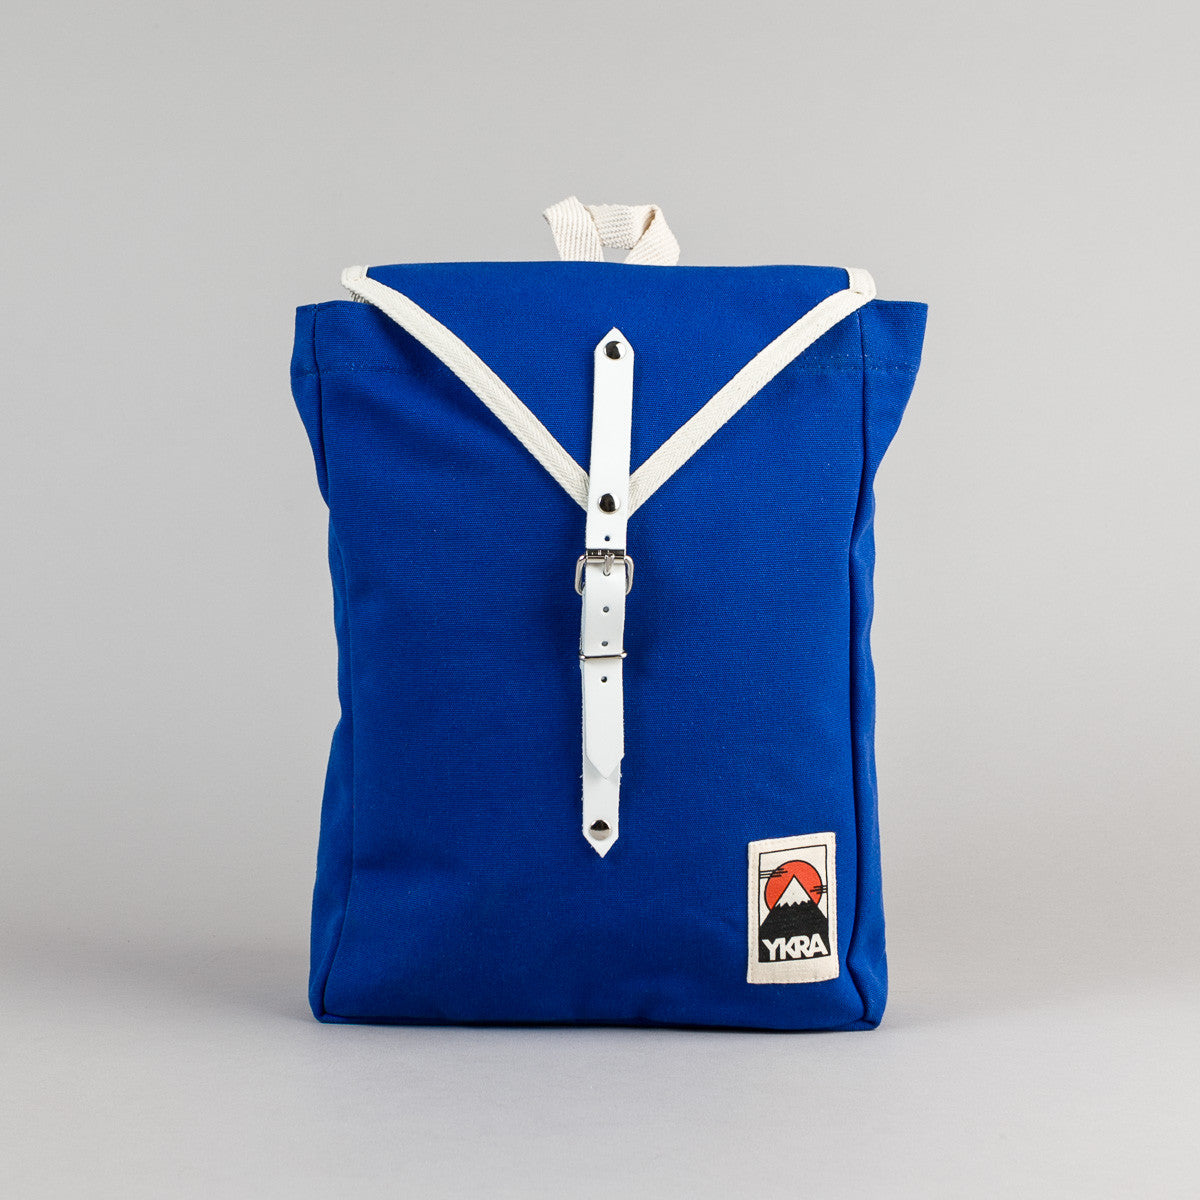 YKRA Scout Backpack - Blue